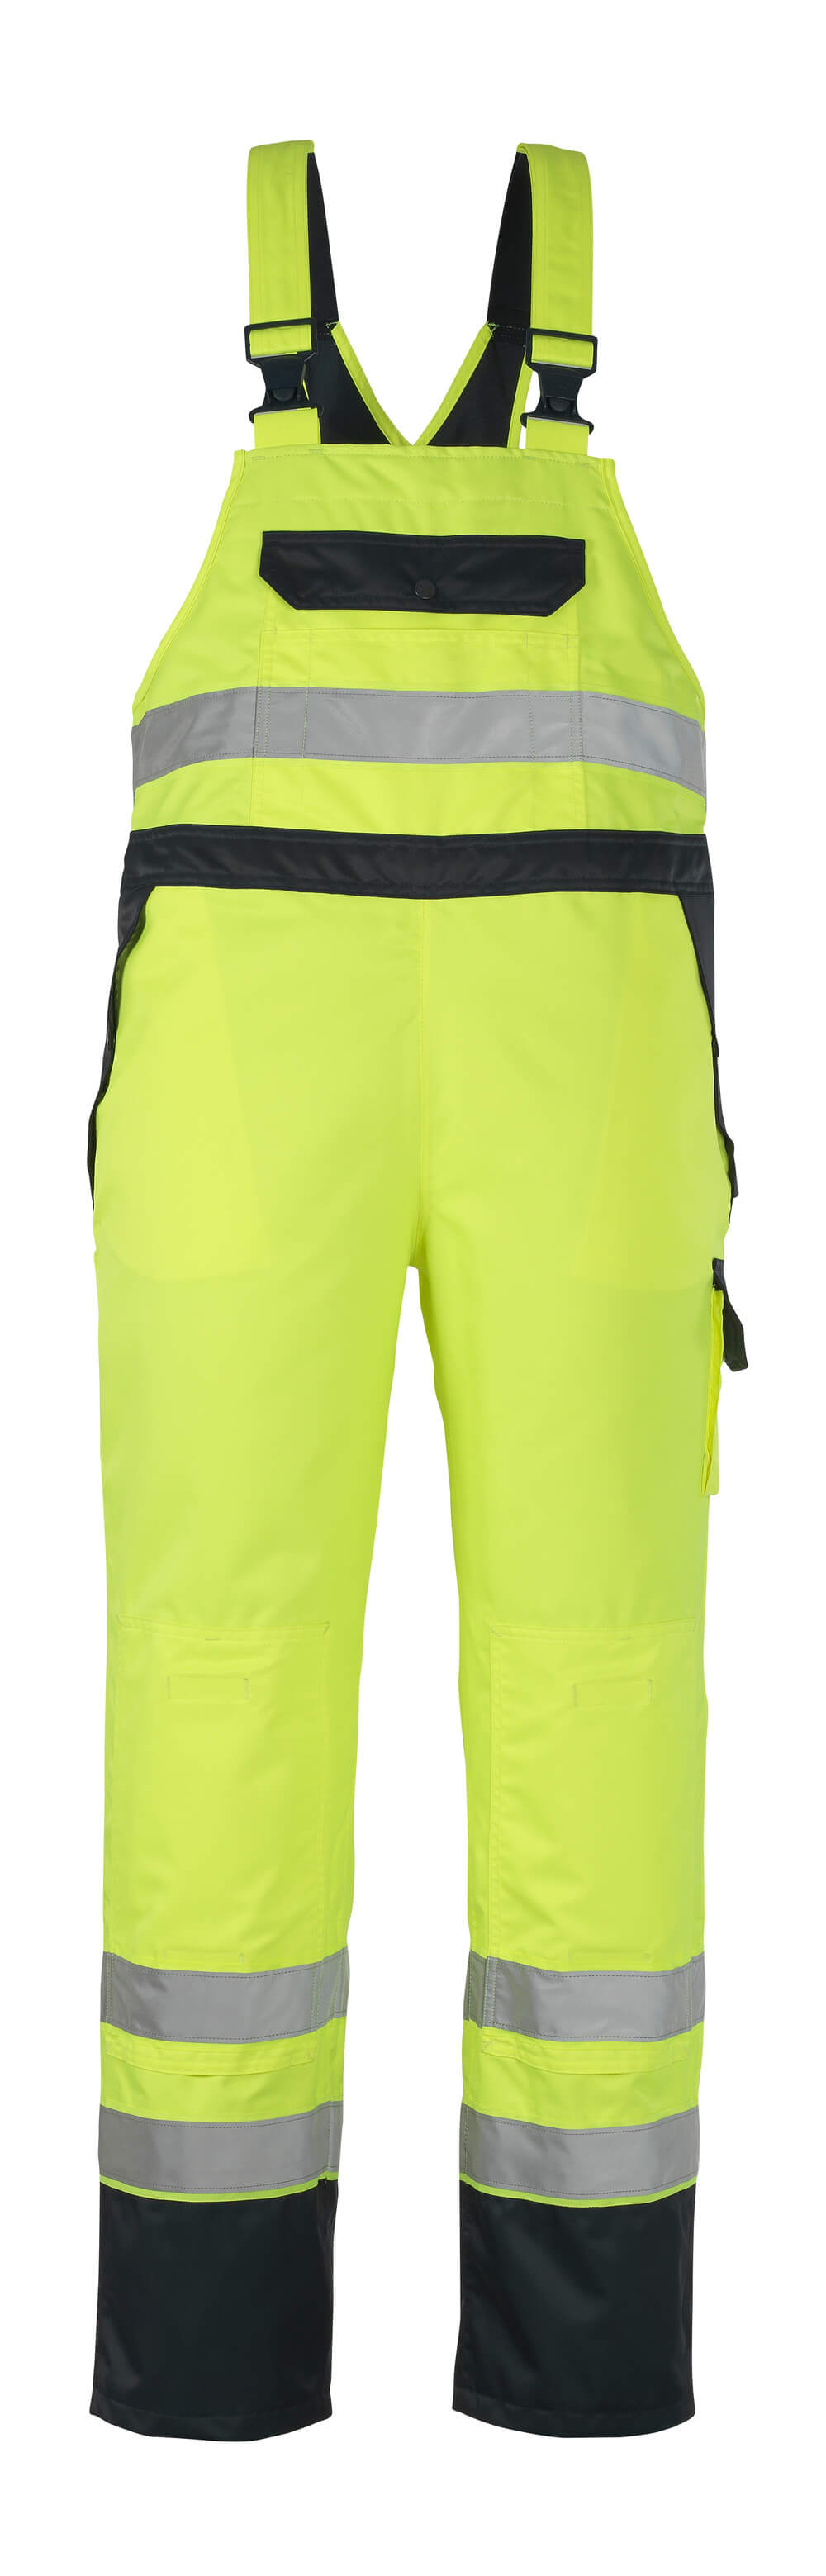 07092-880-171 Bib & Brace Over Trousers with kneepad pockets - hi-vis yellow/navy